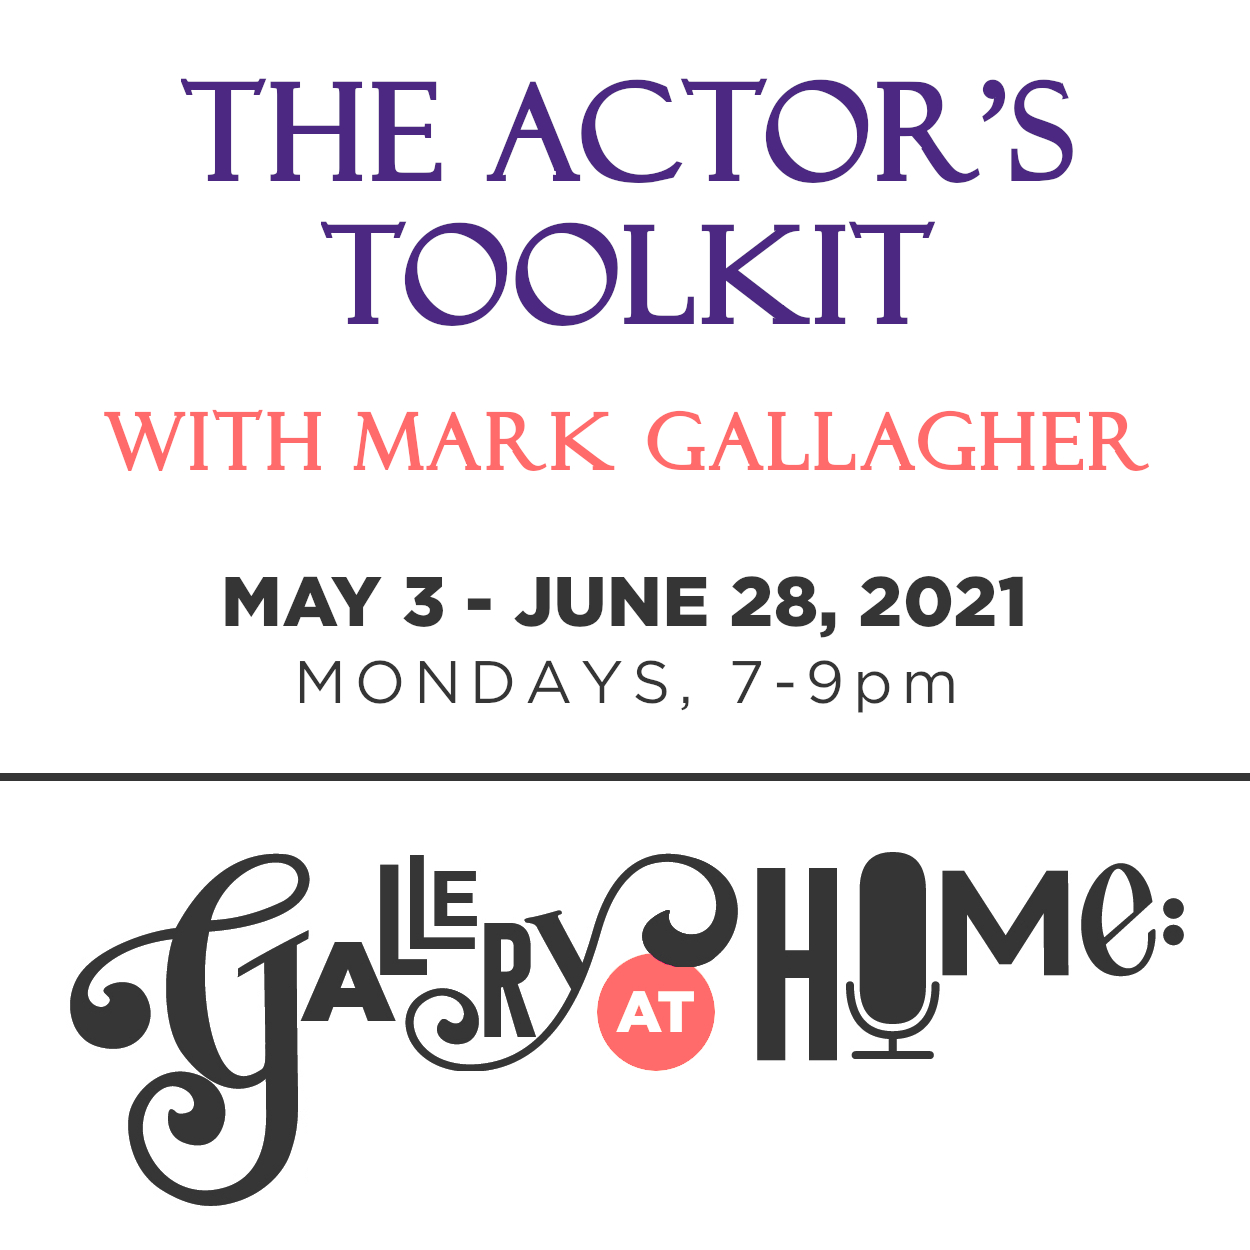 The Actor's Toolkit